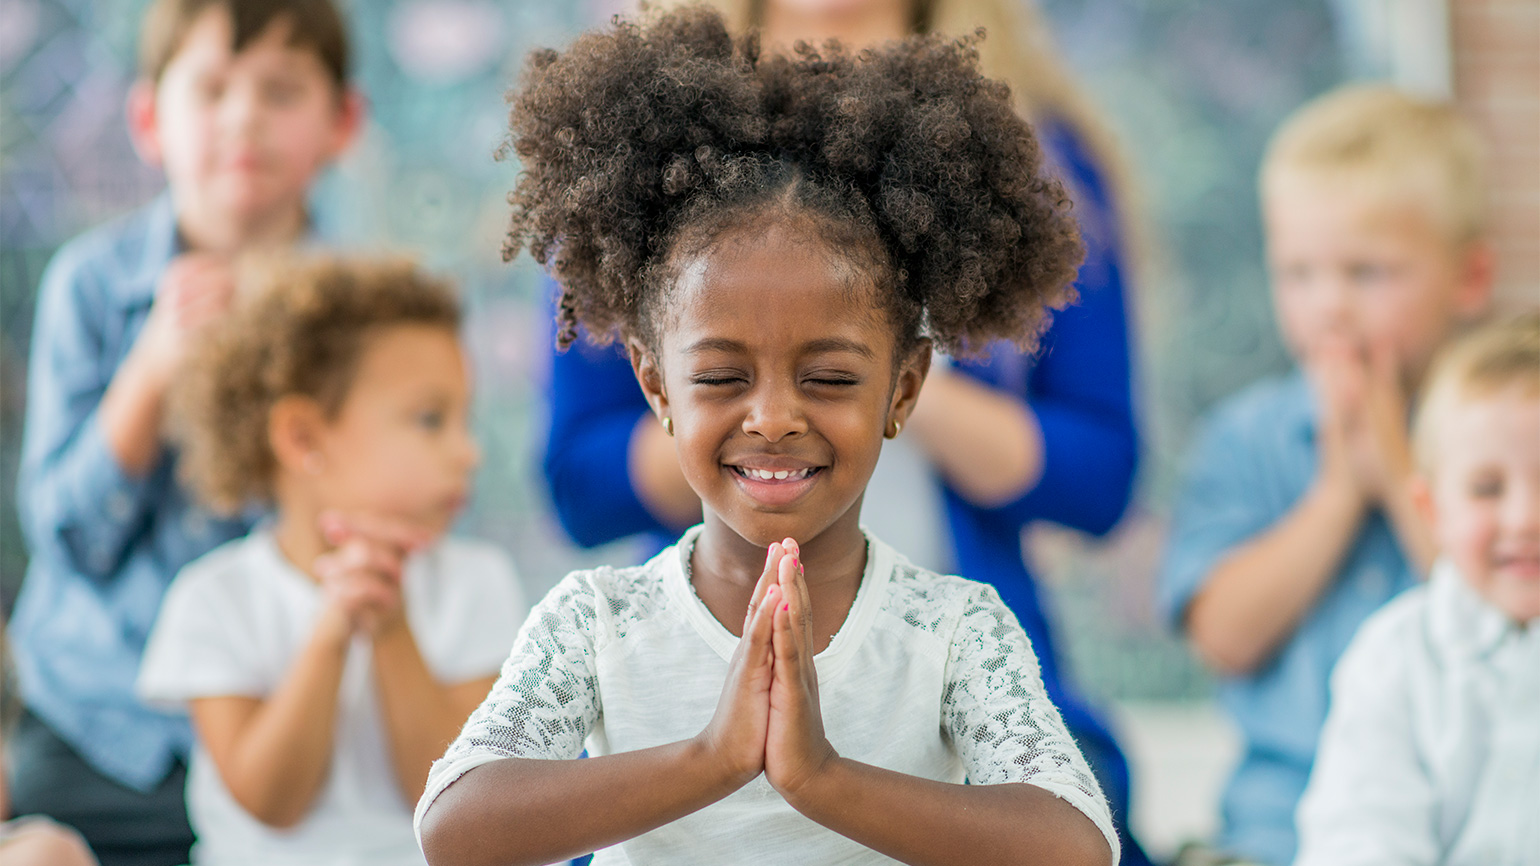 A young girl smiles as she prays